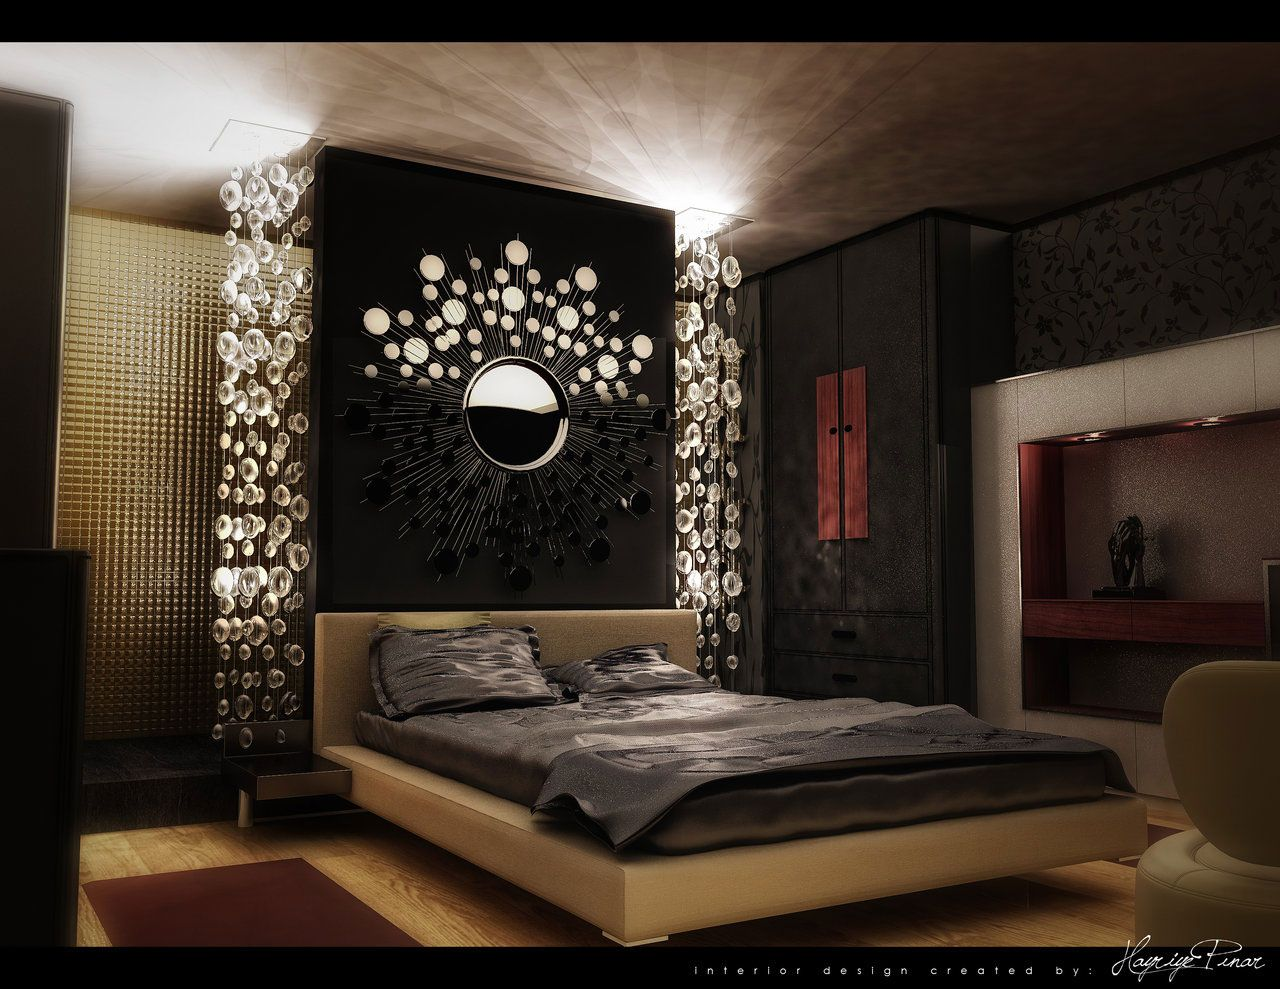 emejing designer bedroom ideas gallery - home design ideas - greuze